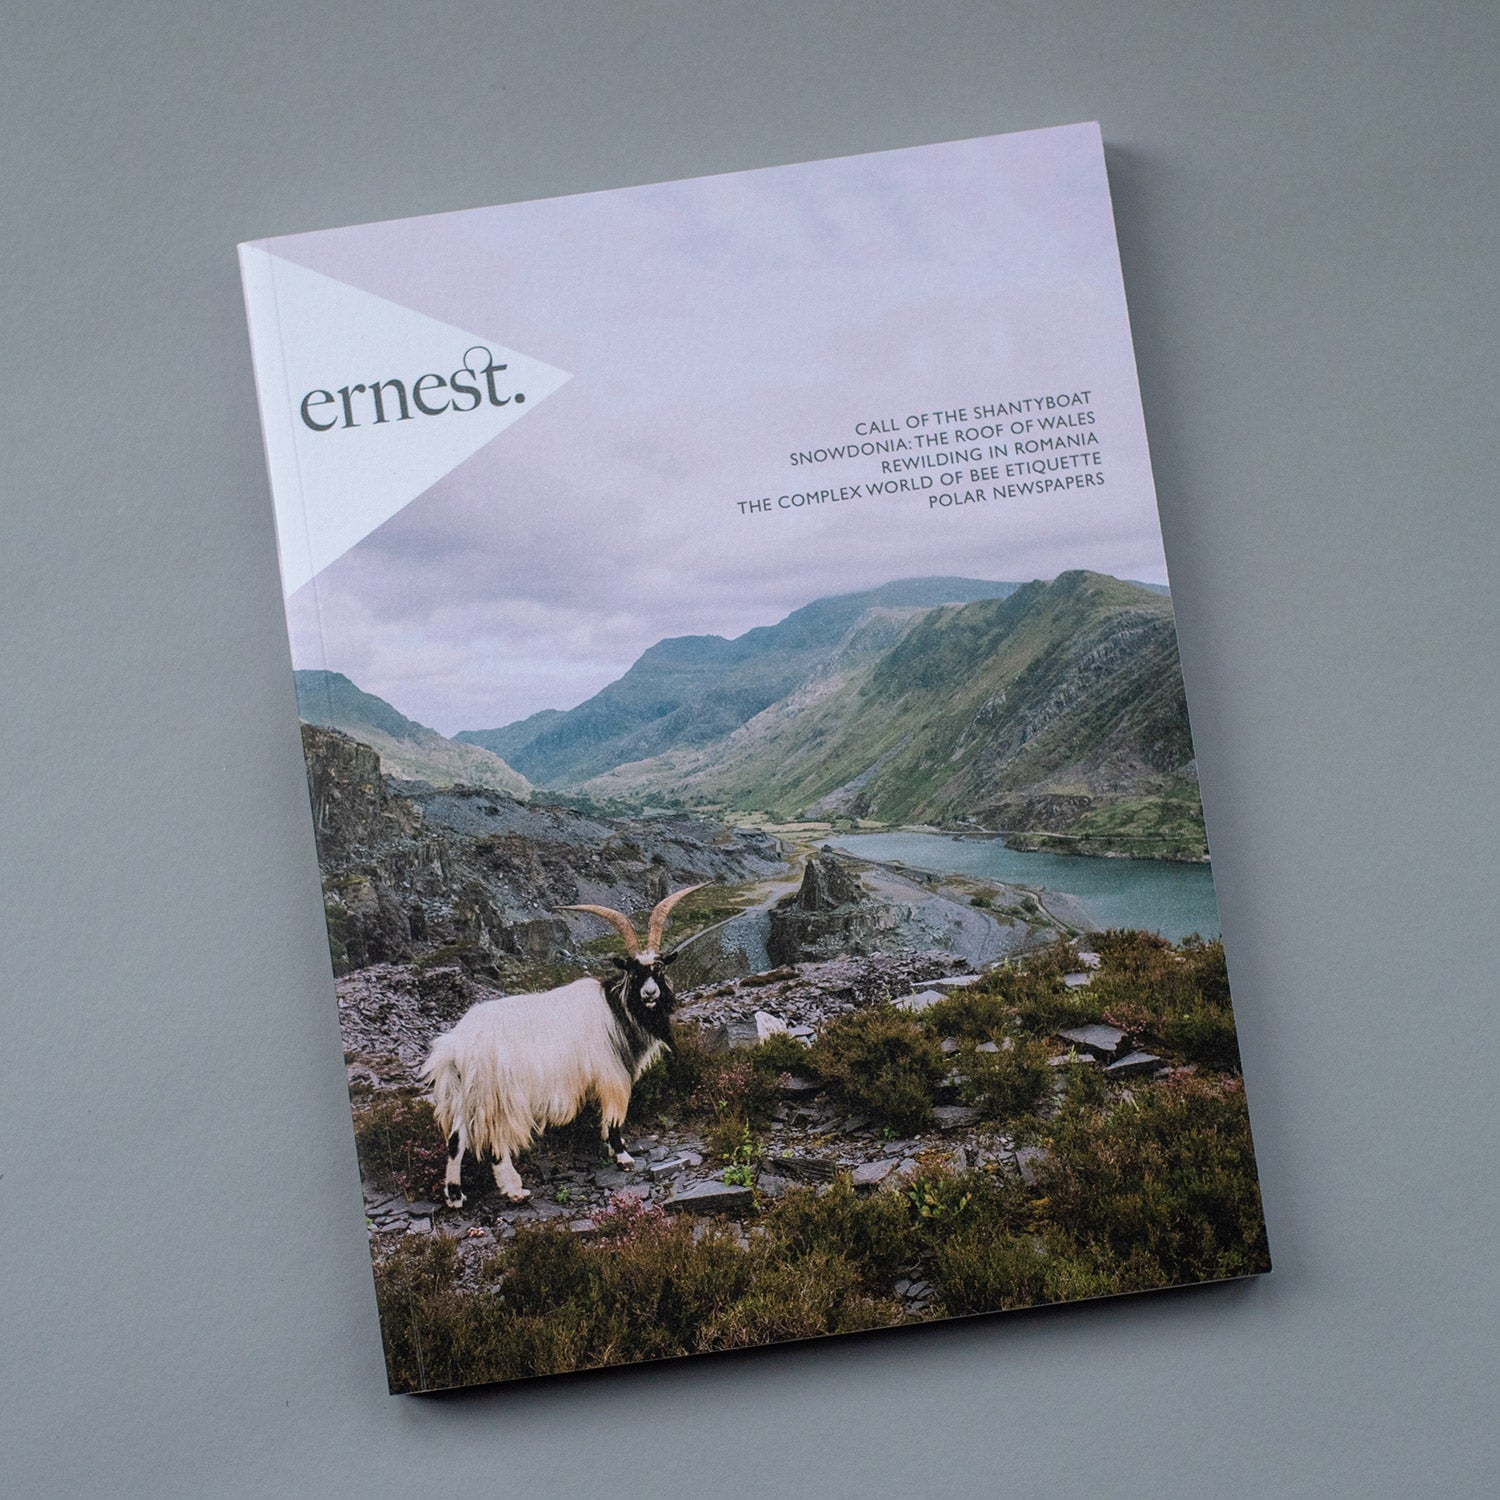 Ernest Journal Volume 8 - OFFGRID Clothing - £10.00